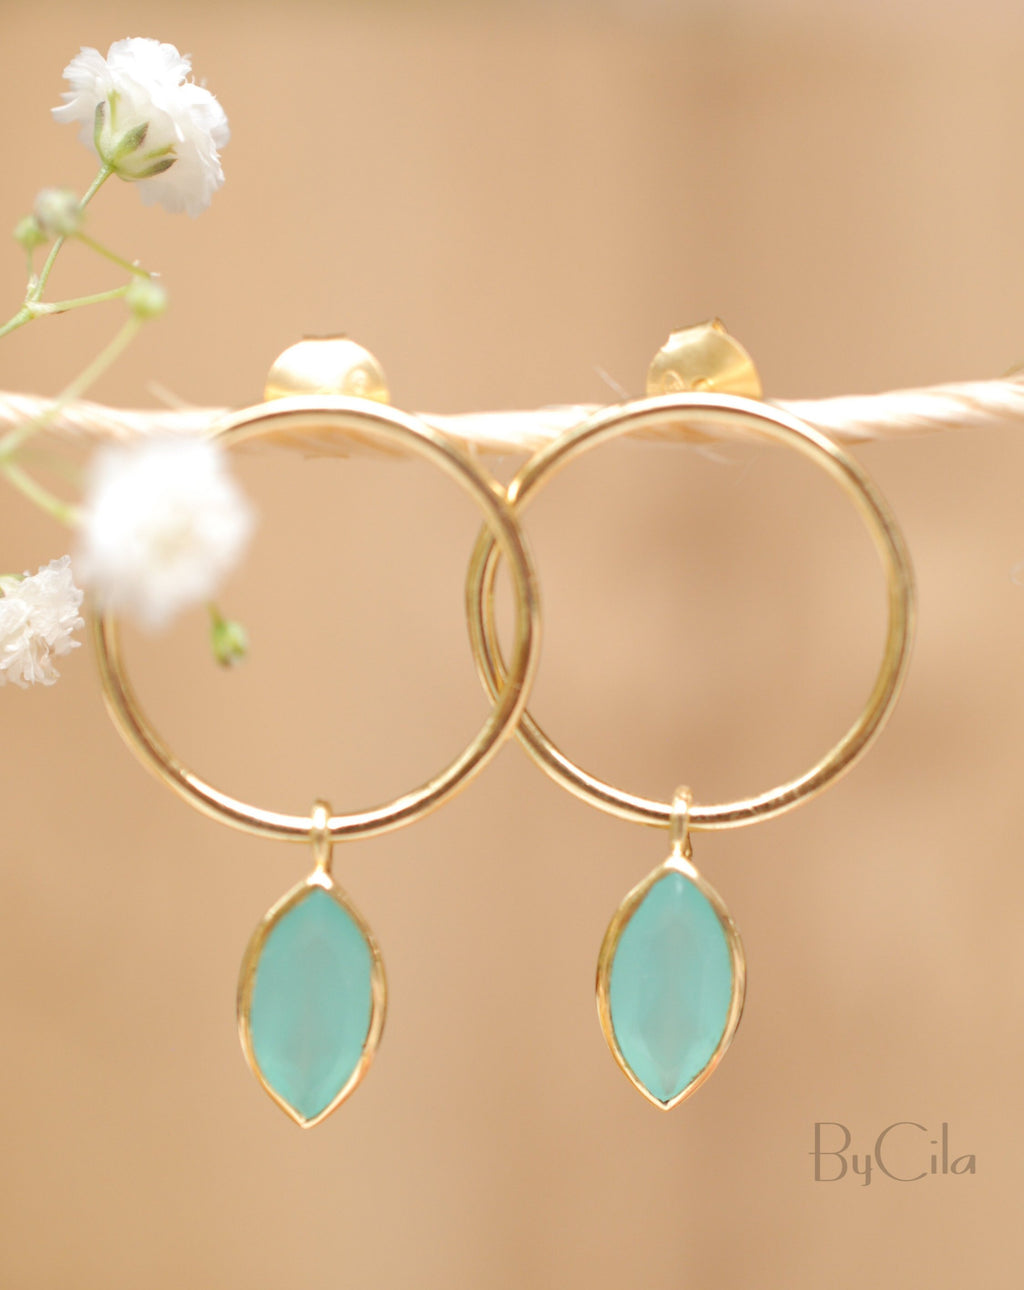 Agatha Earrings * Aqua Chalcedony * Gold Plated or Rose Gold Plated * BJE081A